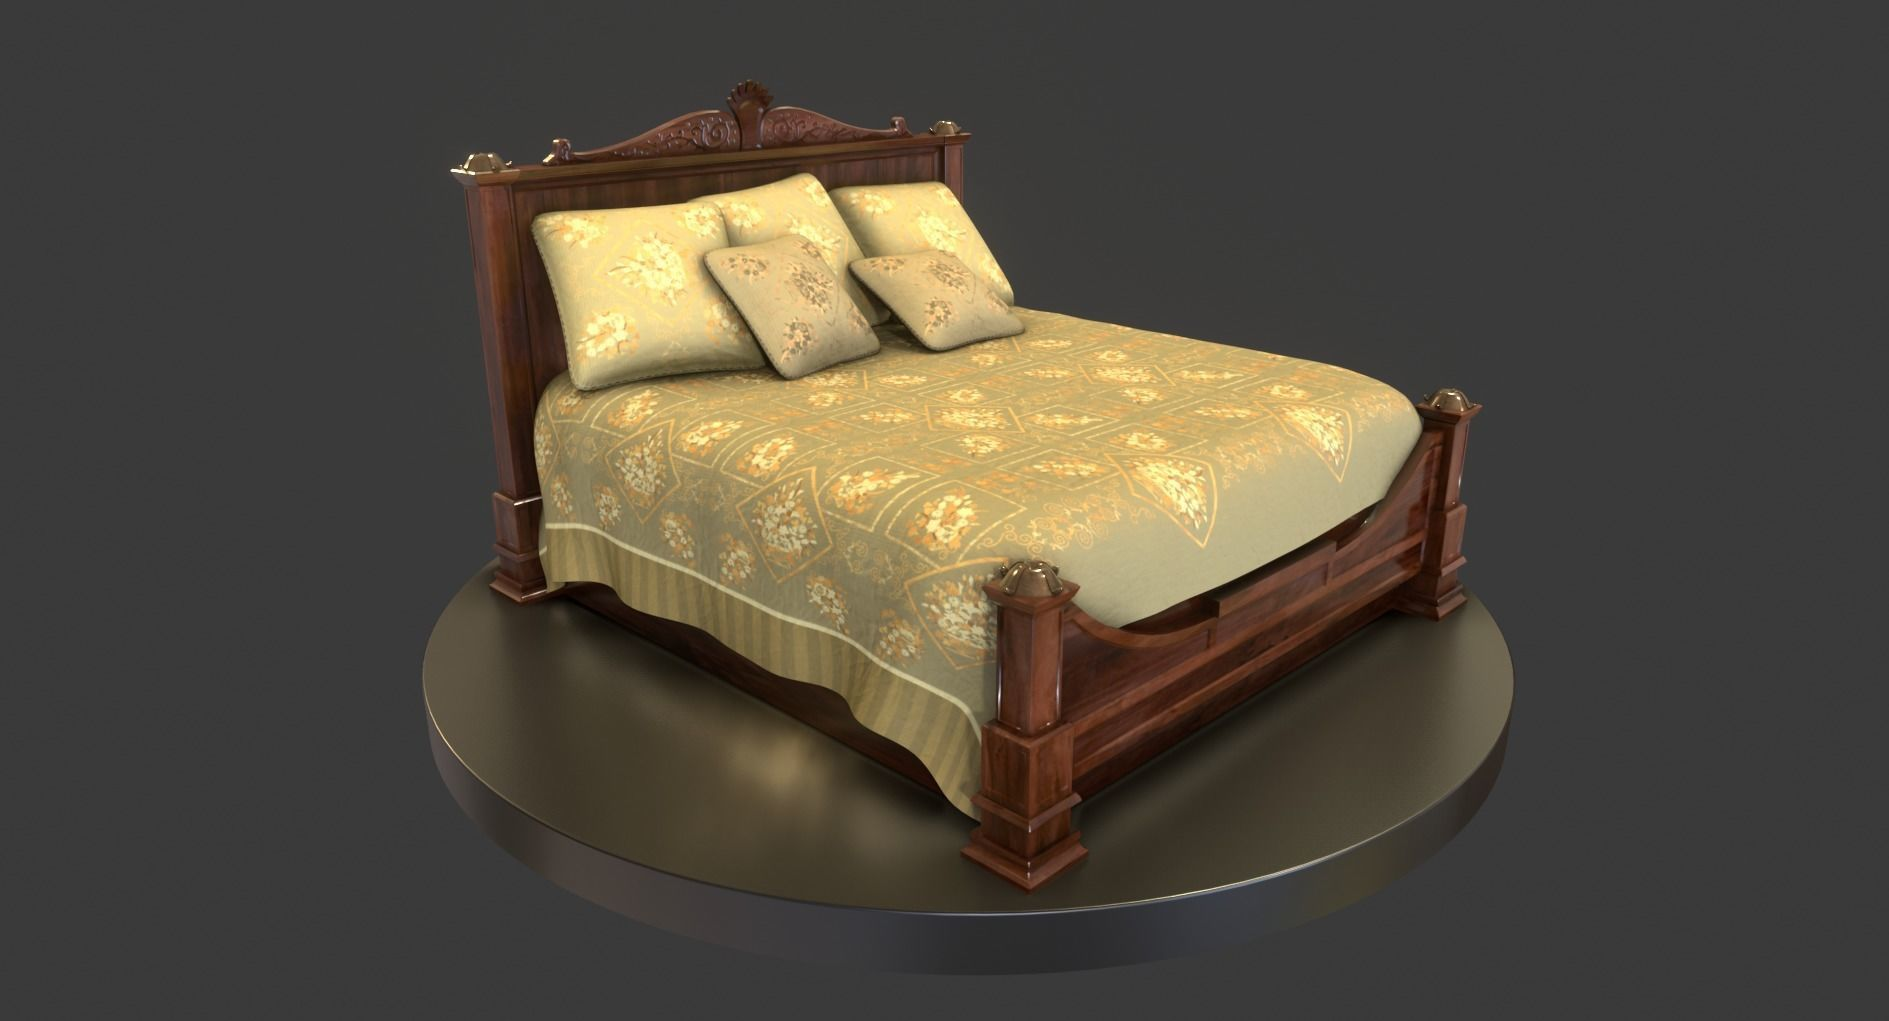 3d Model Vintage Wooden Bed Cgtrader